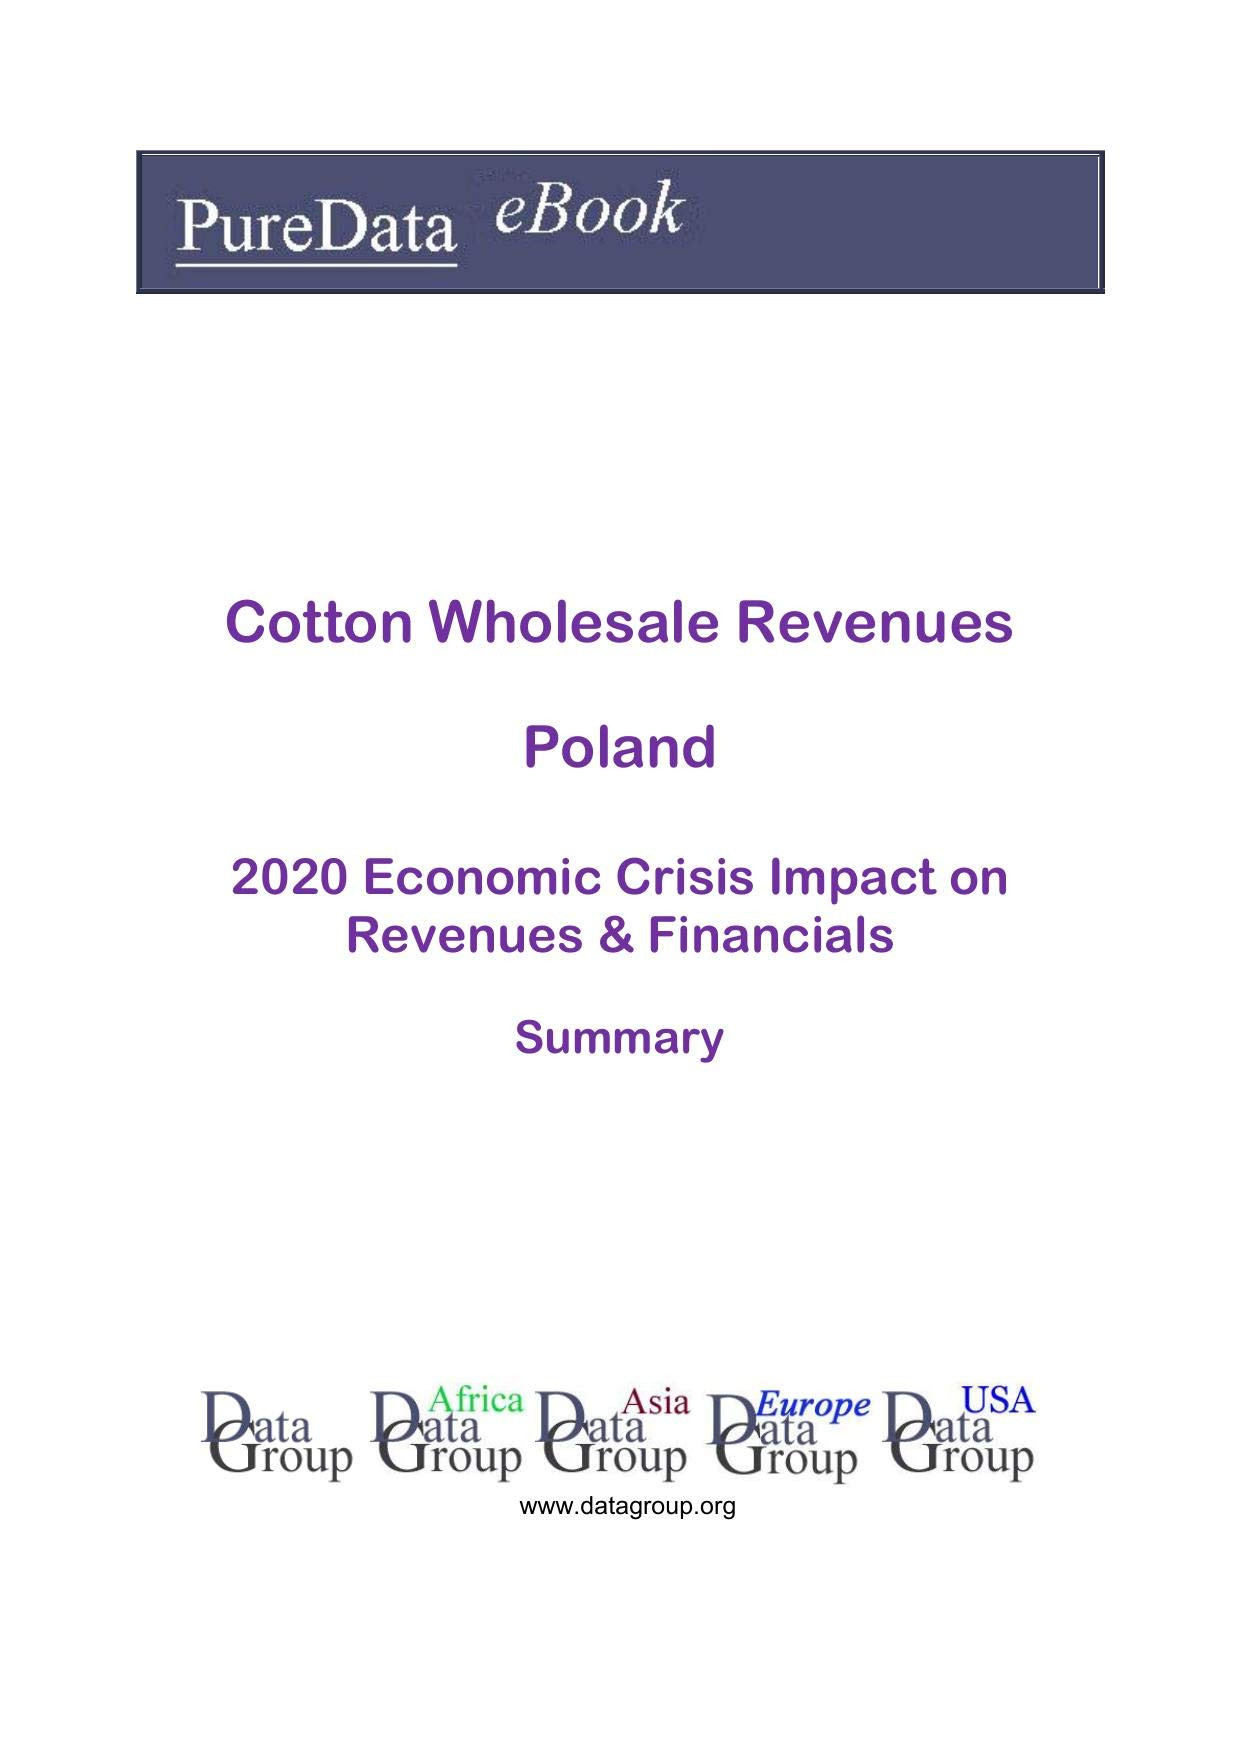 Cotton Wholesale Revenues Poland Summary: 2020 Economic Crisis Impact on Revenues & Financials